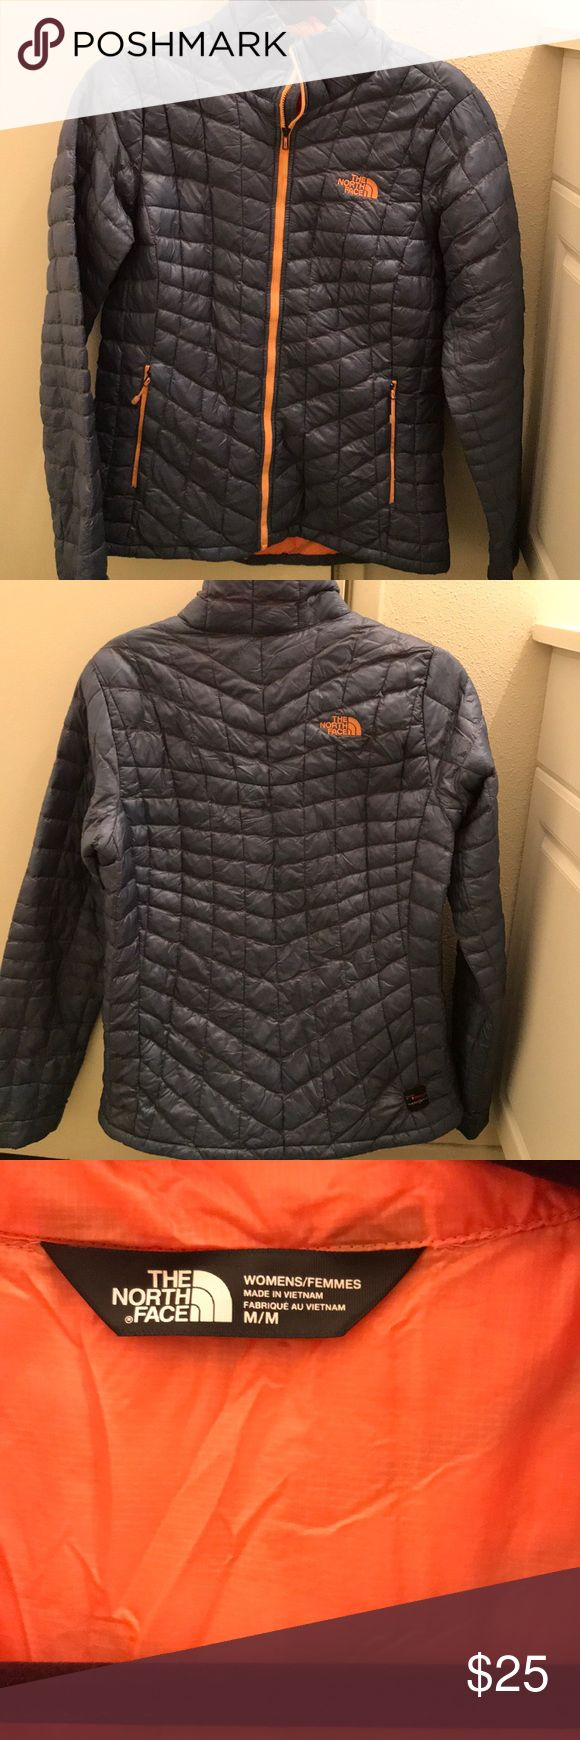 North face thermoball jacket Blue/gray jacket with orange zipper/interior. Has a small hole that can be easily patched up-picture of hole is shown. North Face Jackets & Coats Puffers